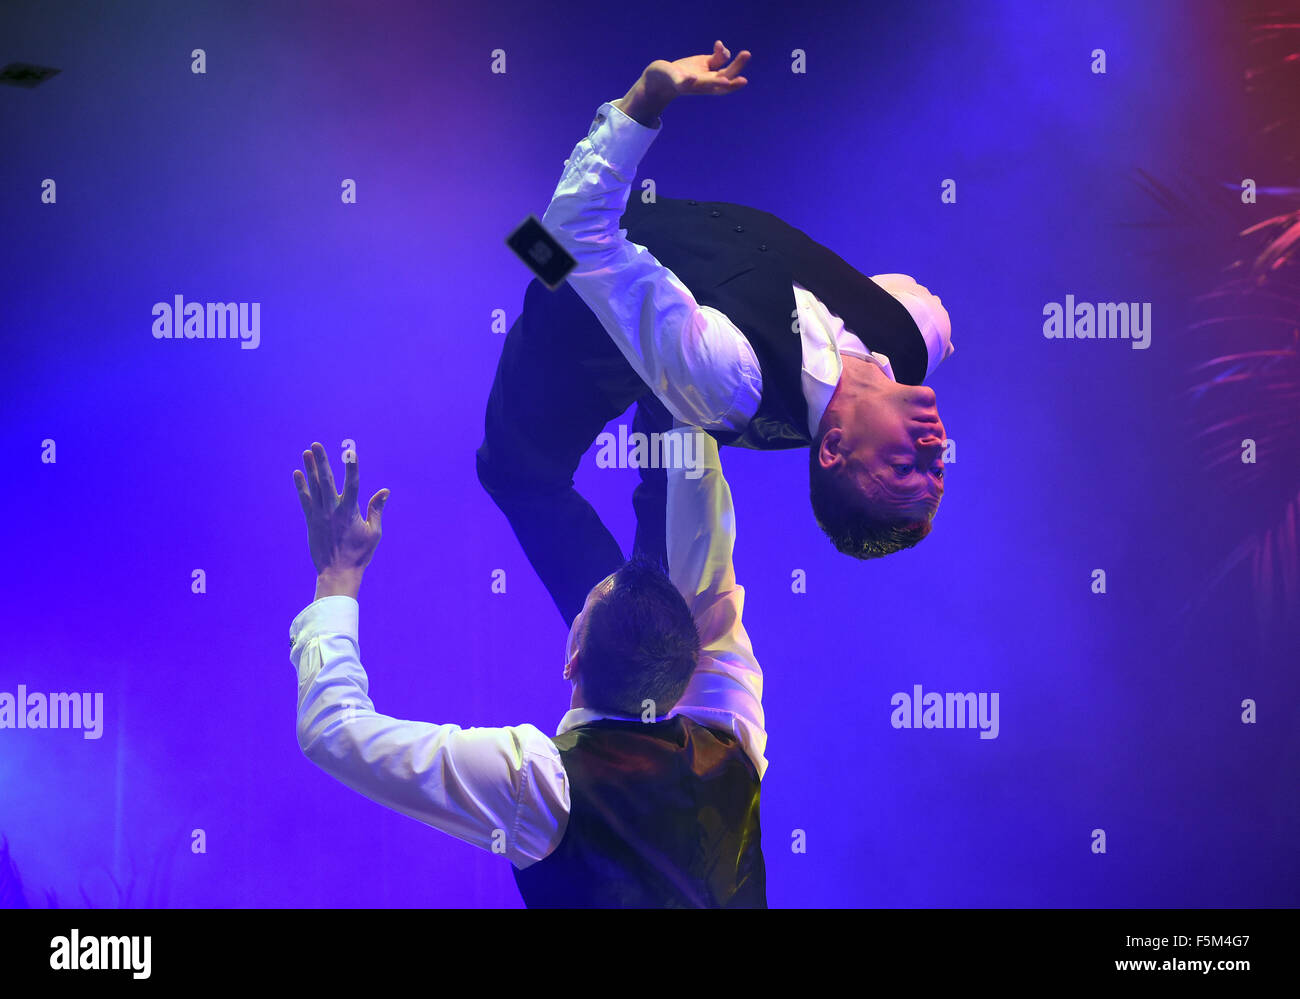 Duesseldorf, Germany. 05th Nov, 2015. Artistes Timo Niermann and Robin Witt perform at the Roncalli`s Apollo Varietè - Stock Image